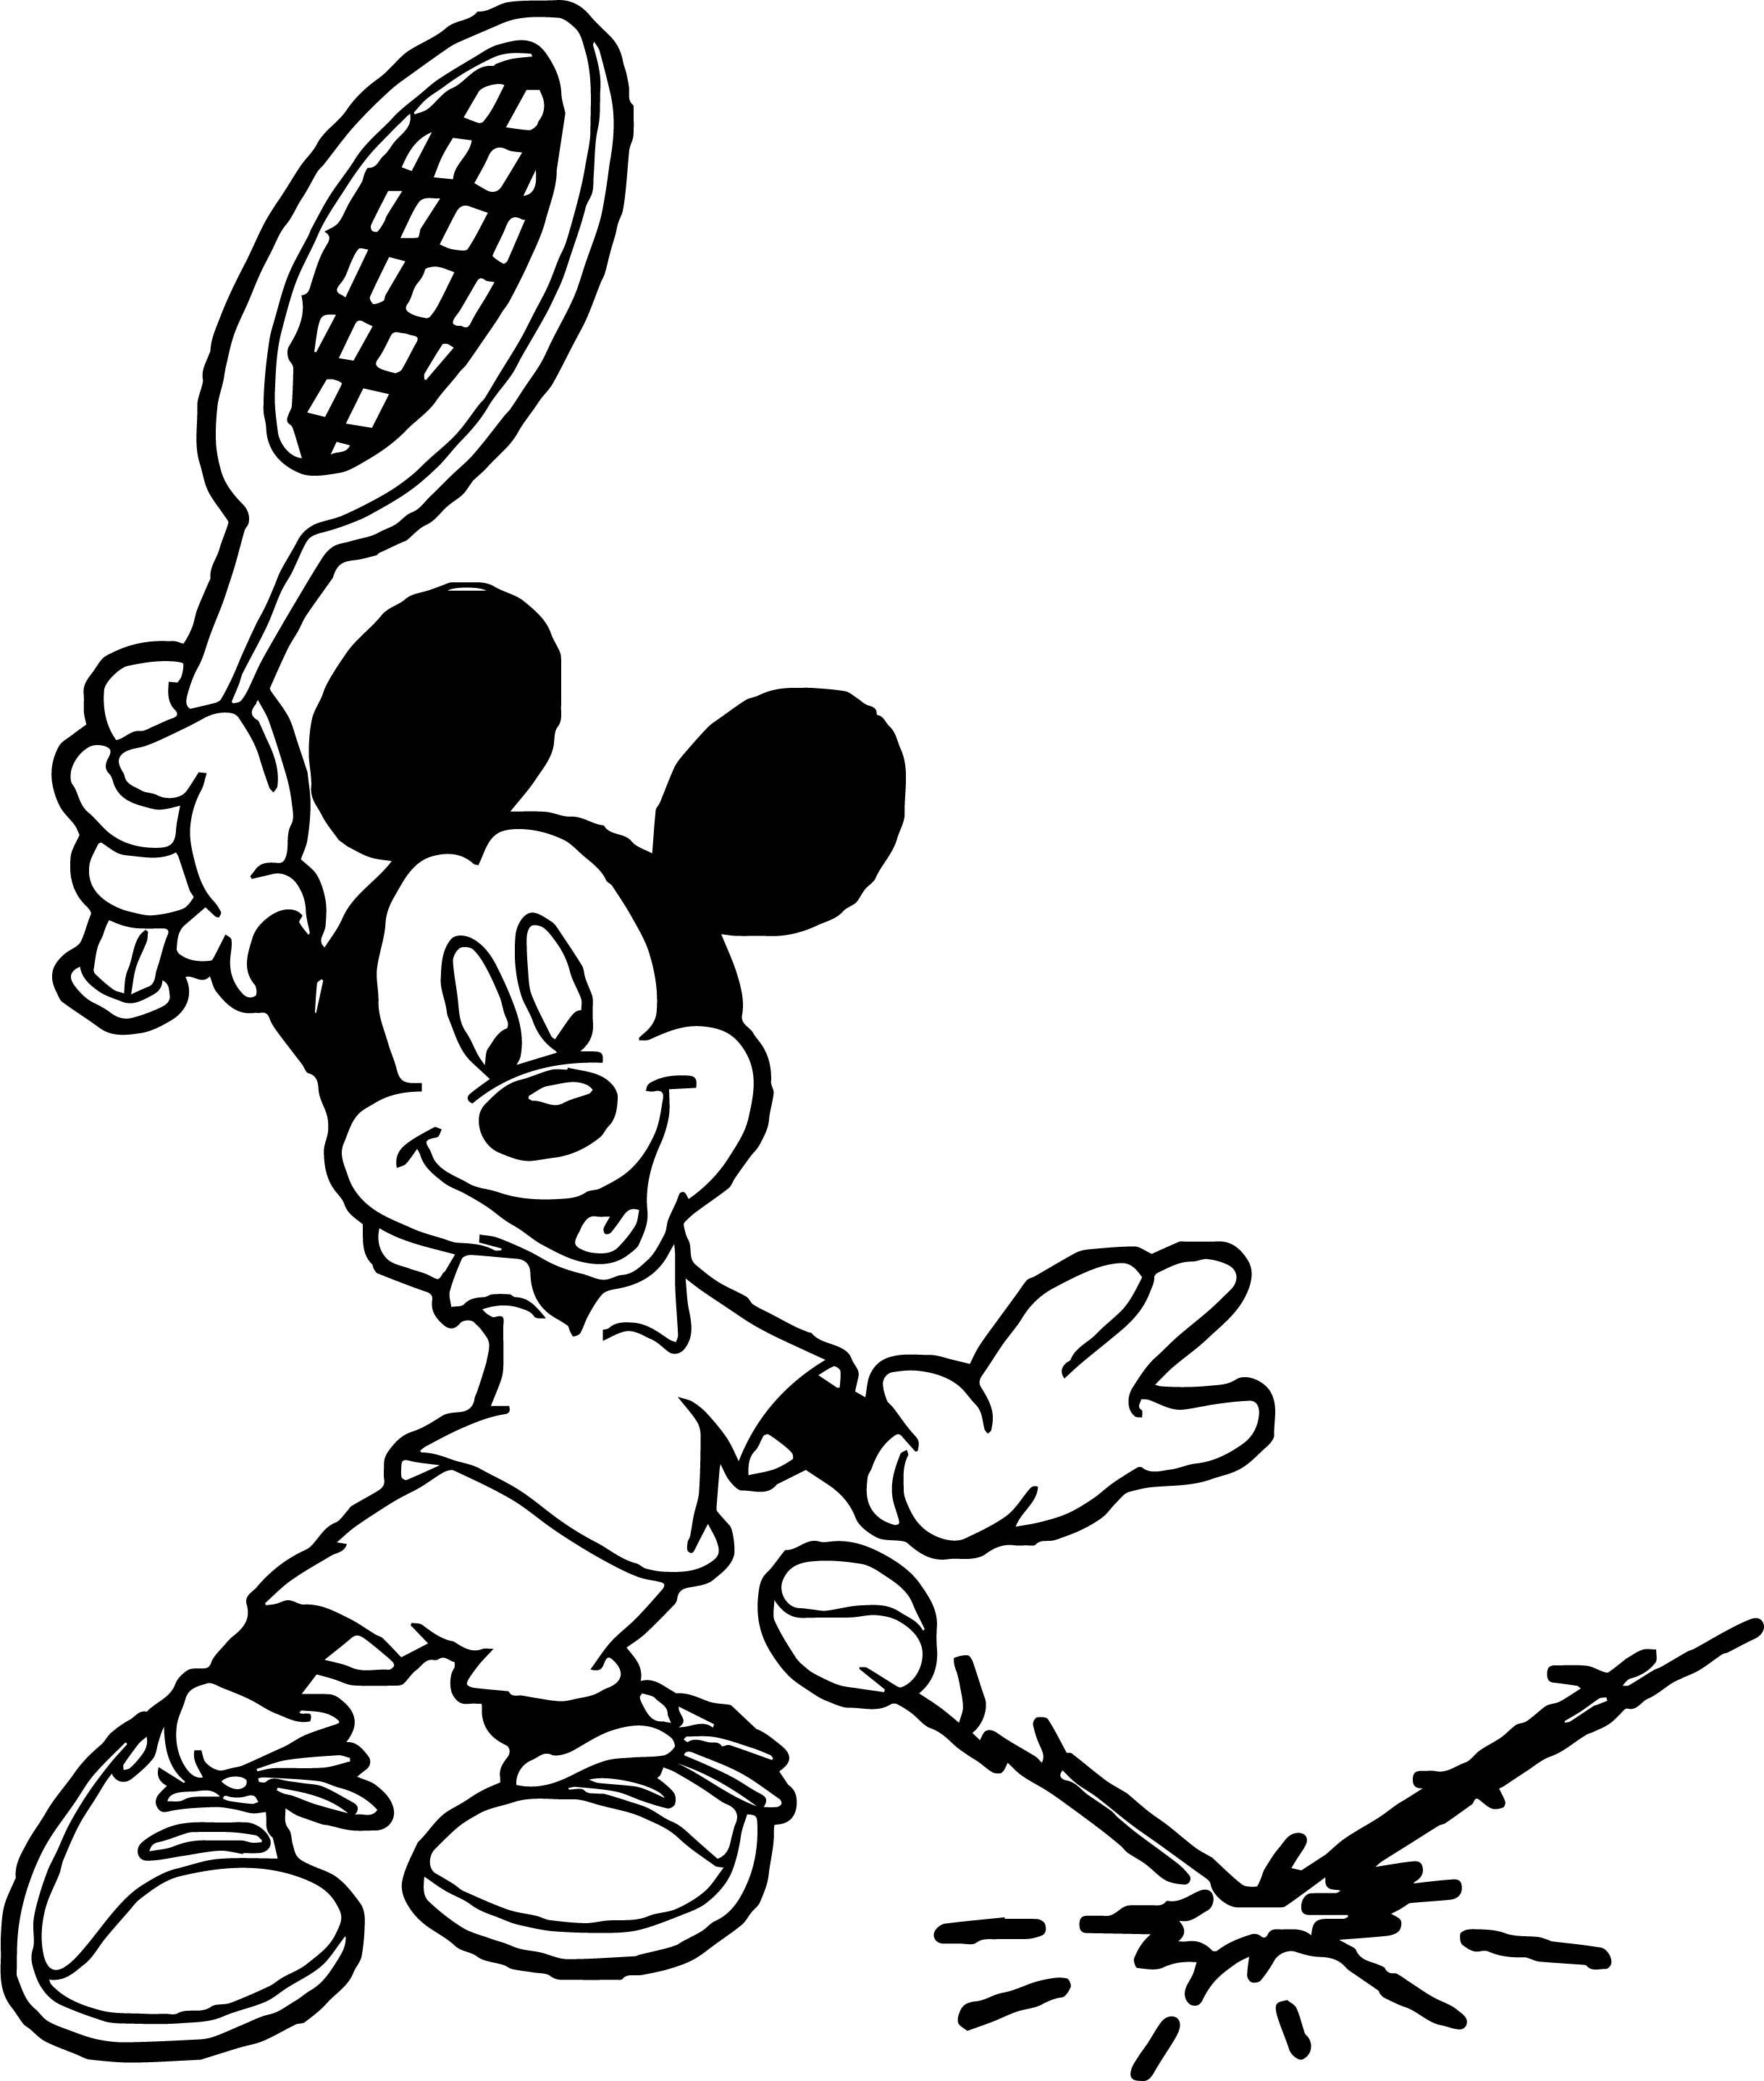 Awesome Mickey Tennis Splash Tennis Ball Coloring Page Coloring Pages Coloring Sheets For Kids Coloring Pages For Boys